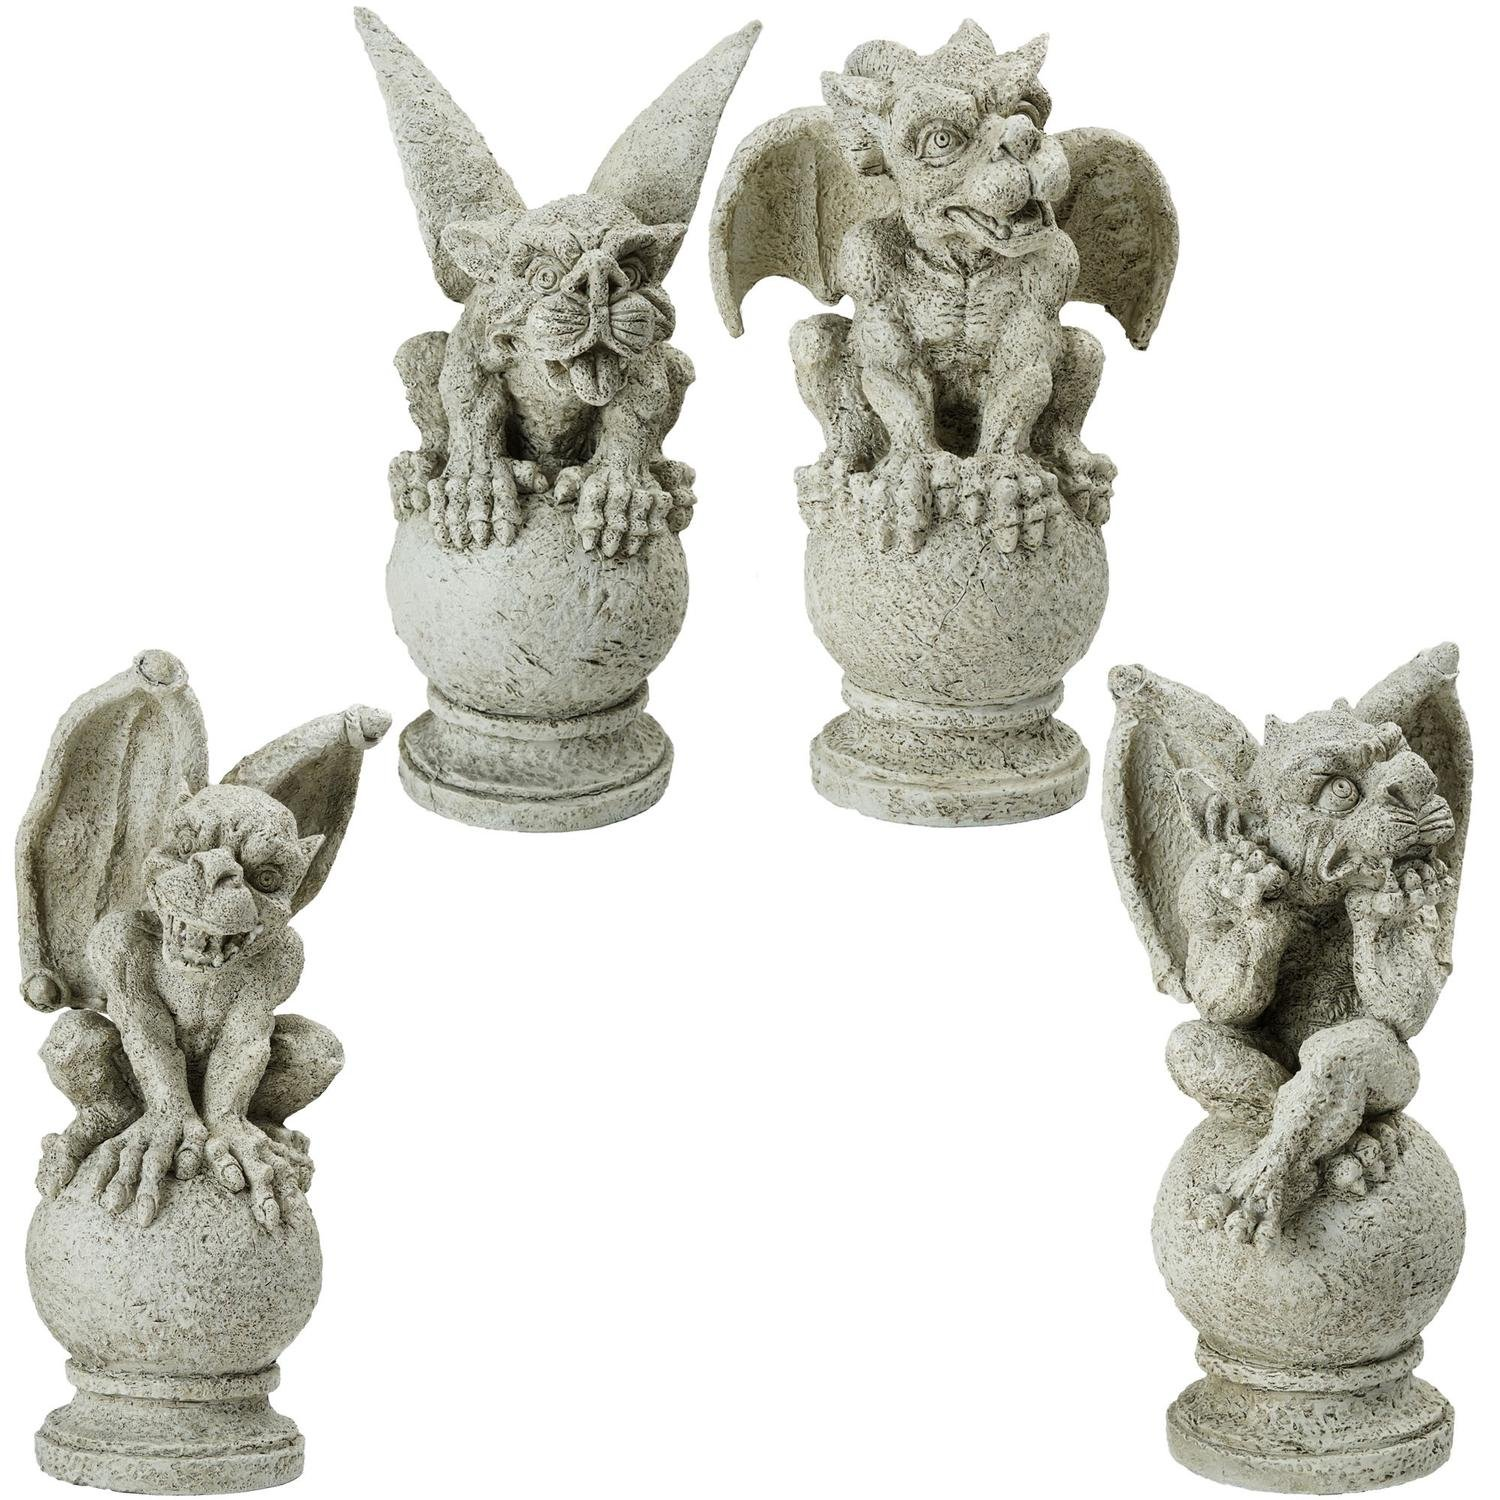 Northlight Decorative Gargoyles on Pedestal Finials Outdoor Garden Statues, 13'', Brown